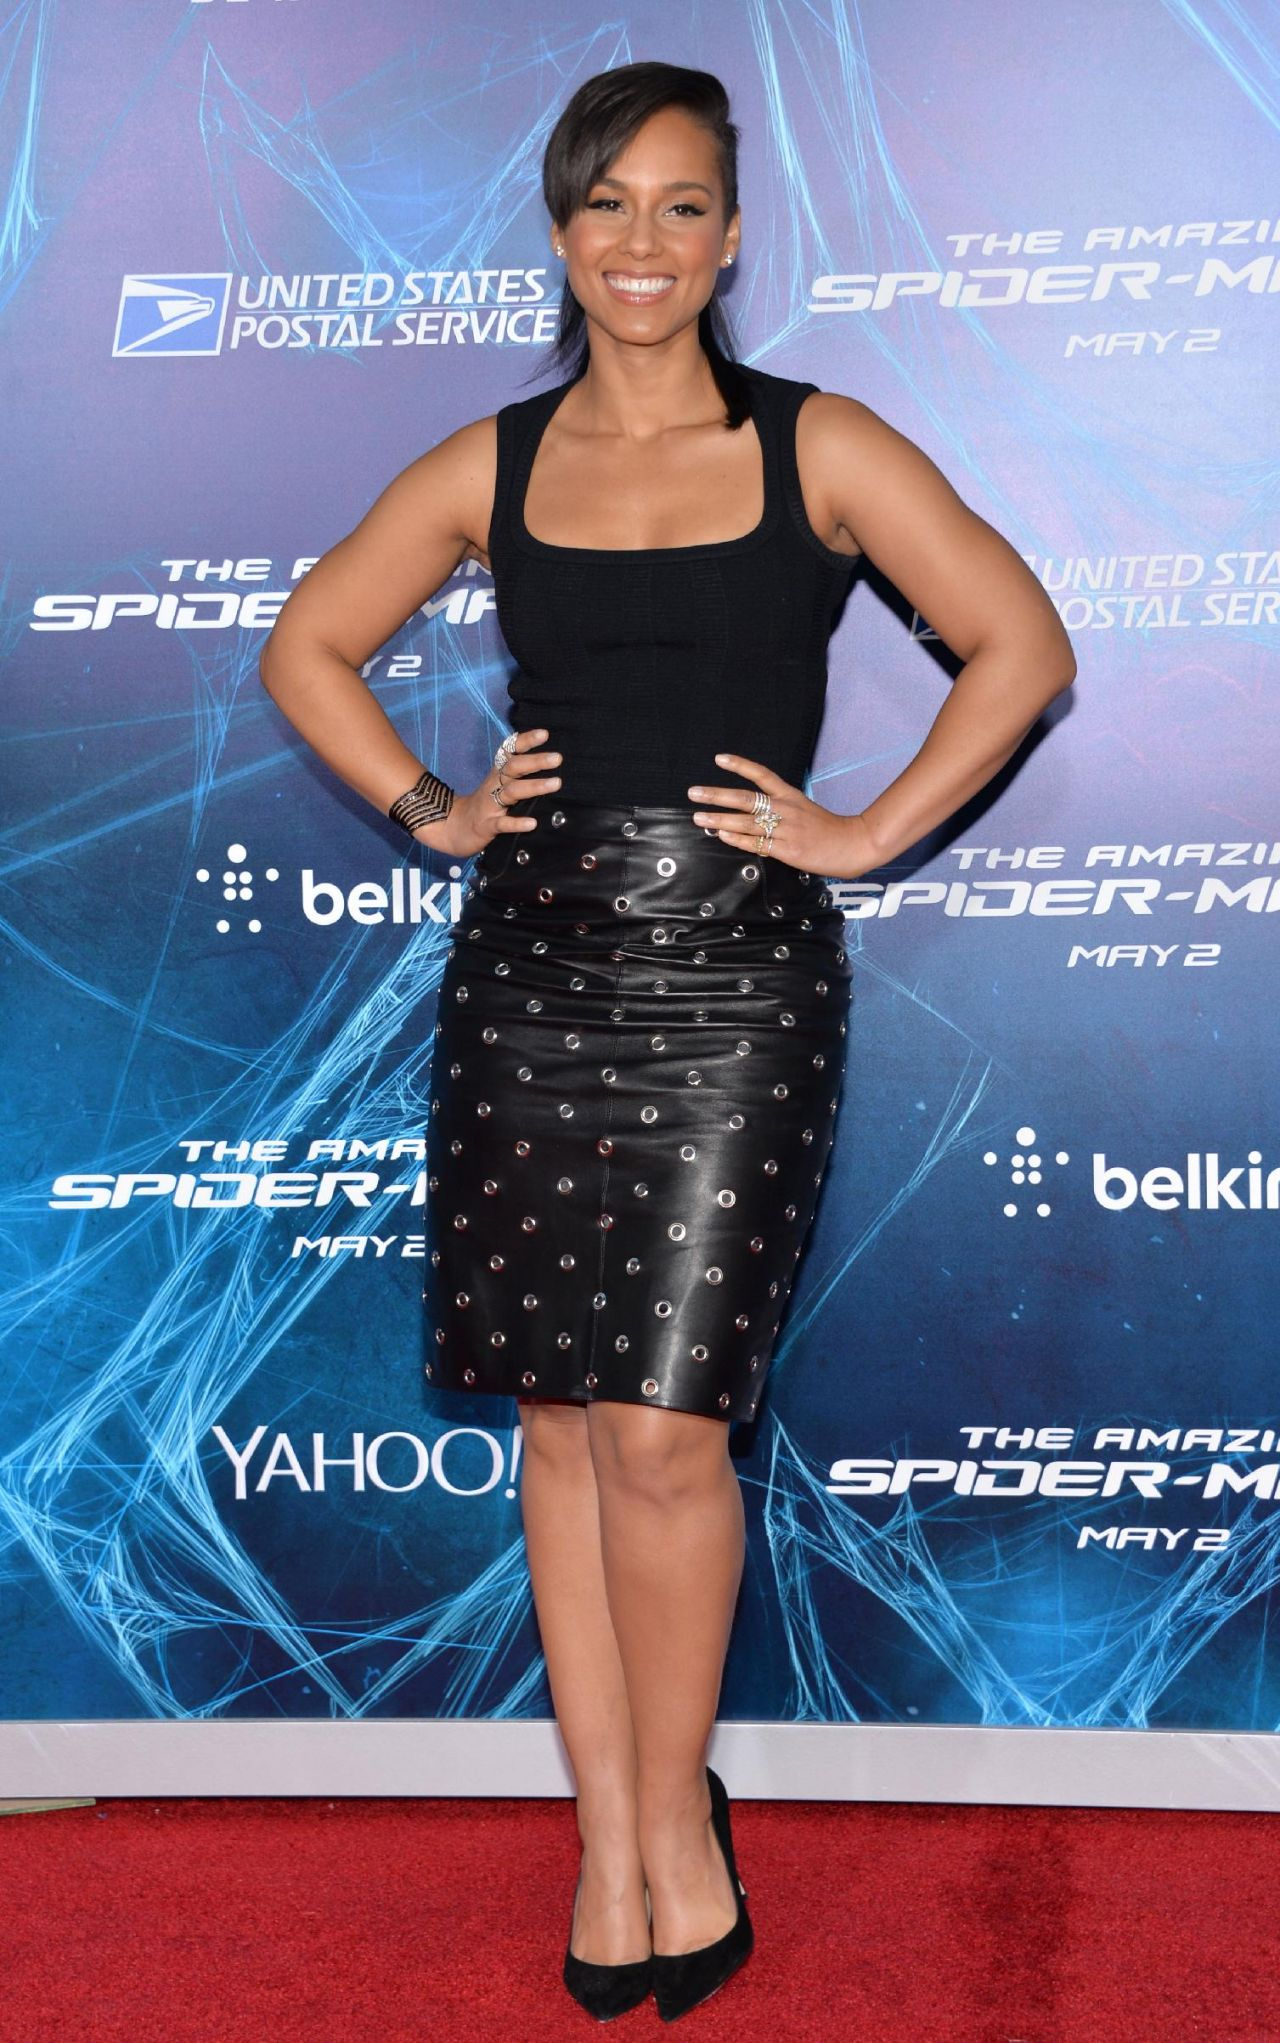 THE AMAZING SPIDER-MAN 2 Premiere in New york City – Alicia Keys